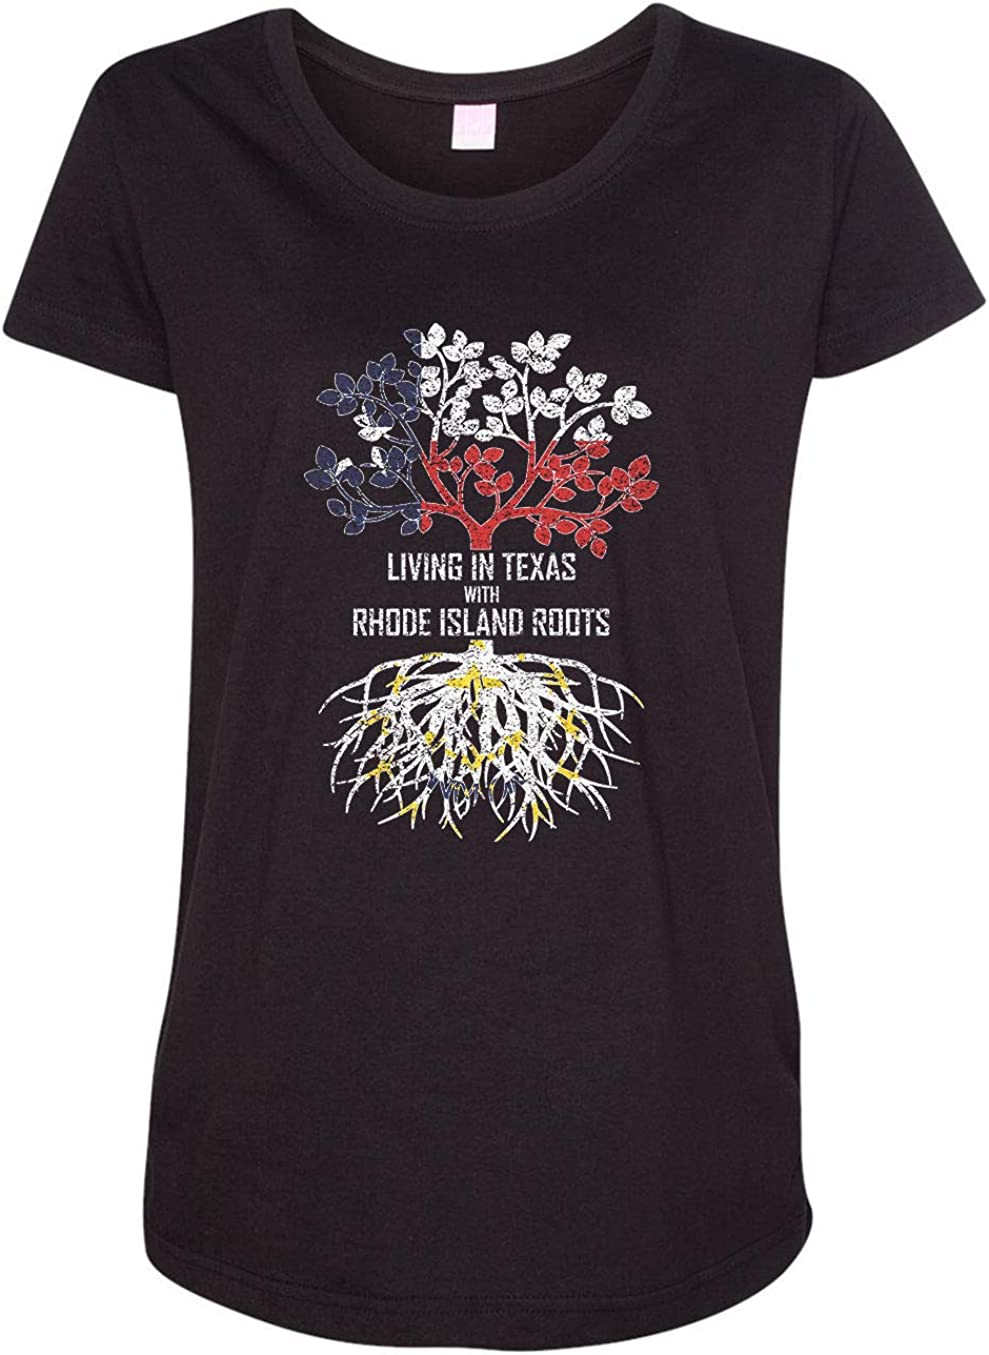 HARD EDGE DESIGN Women's Living in Texas with Rhode Island Roots T-Shirt